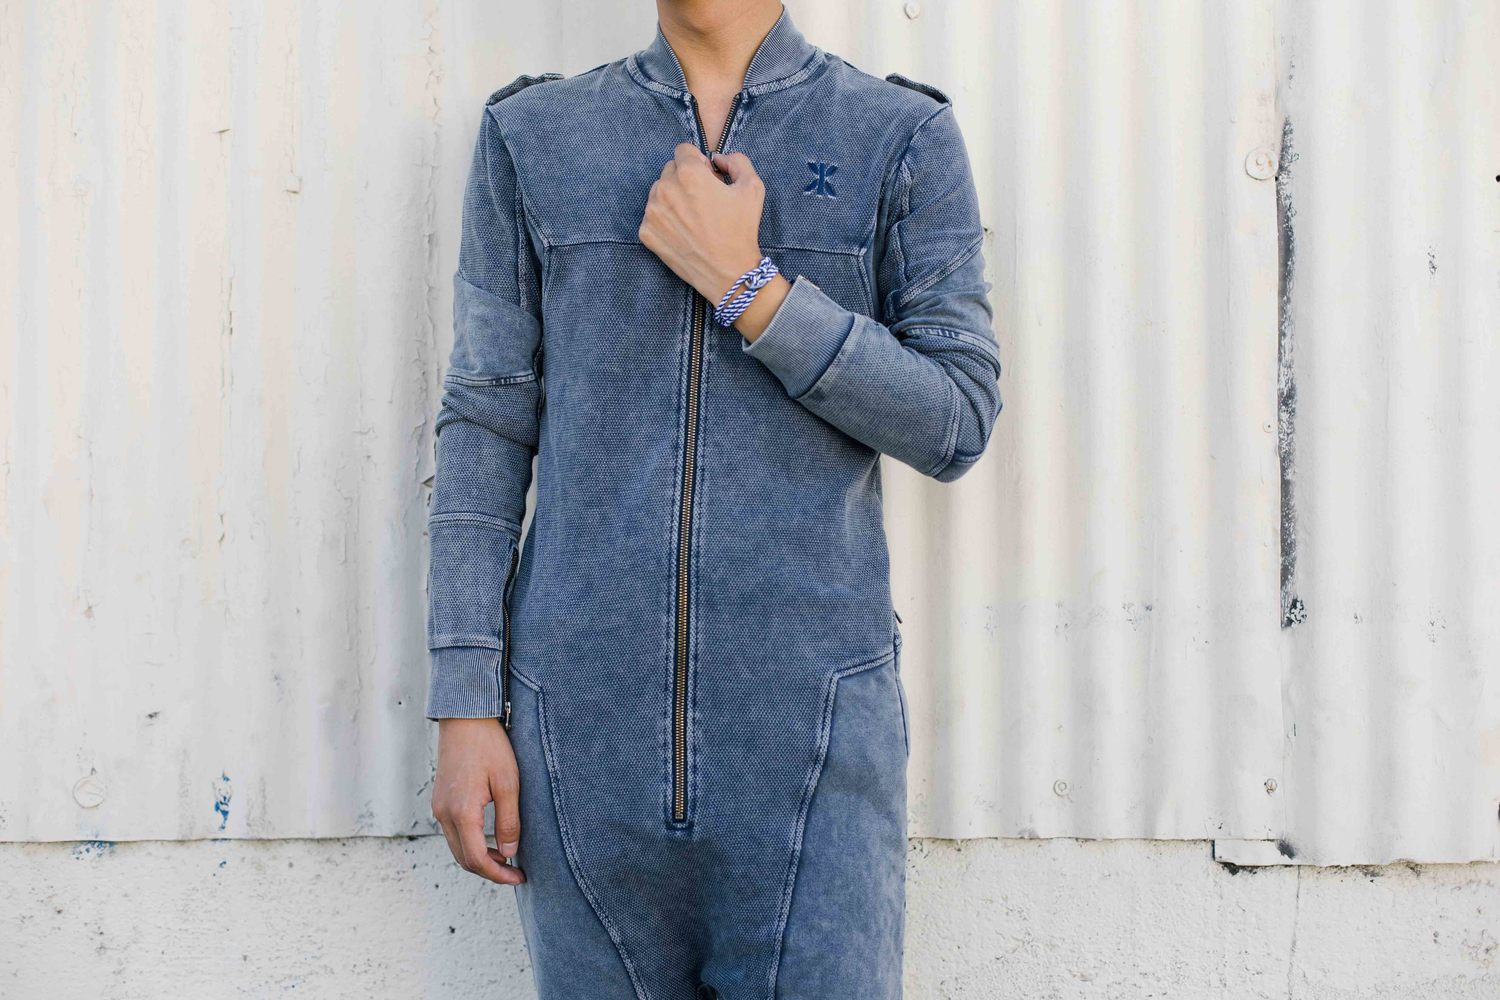 mybelonging-tommylei-minimal-menswear-one-piece-jumpsuits-16.jpg